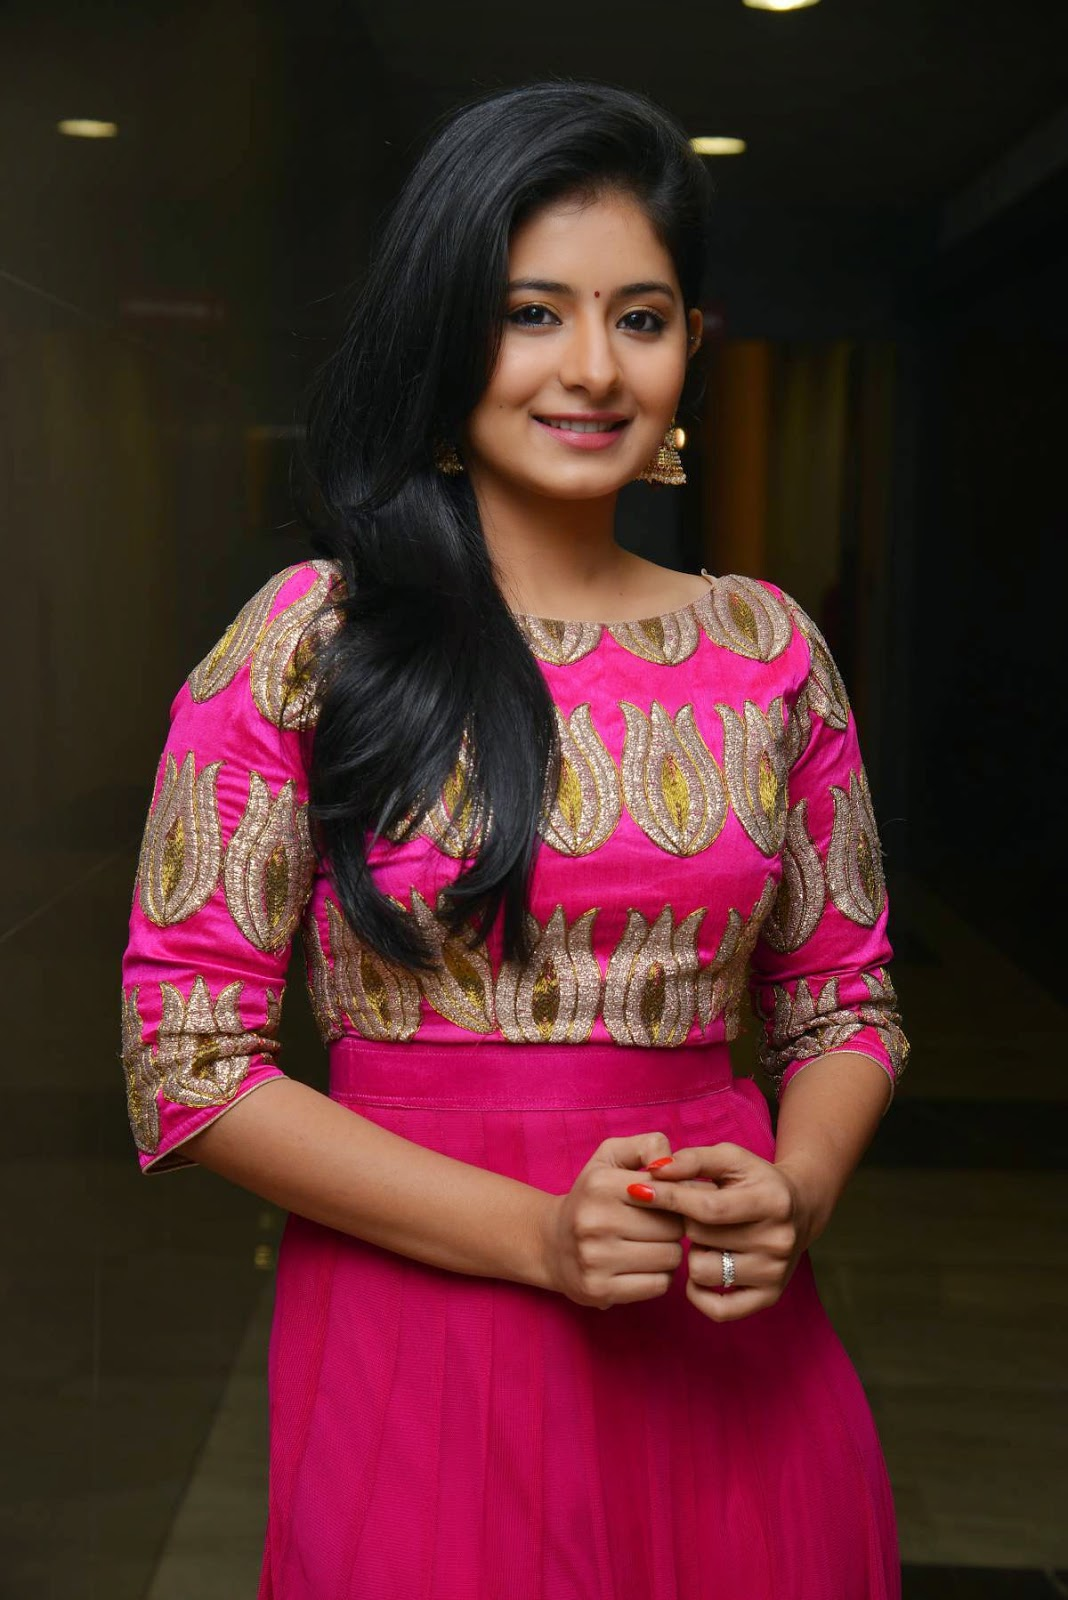 Actress Reshmi Menon Latest Cute Hot Beautiful Pink Dress Spicy Photos Gallery At Hyderabad Love Story Movie Audio Launch